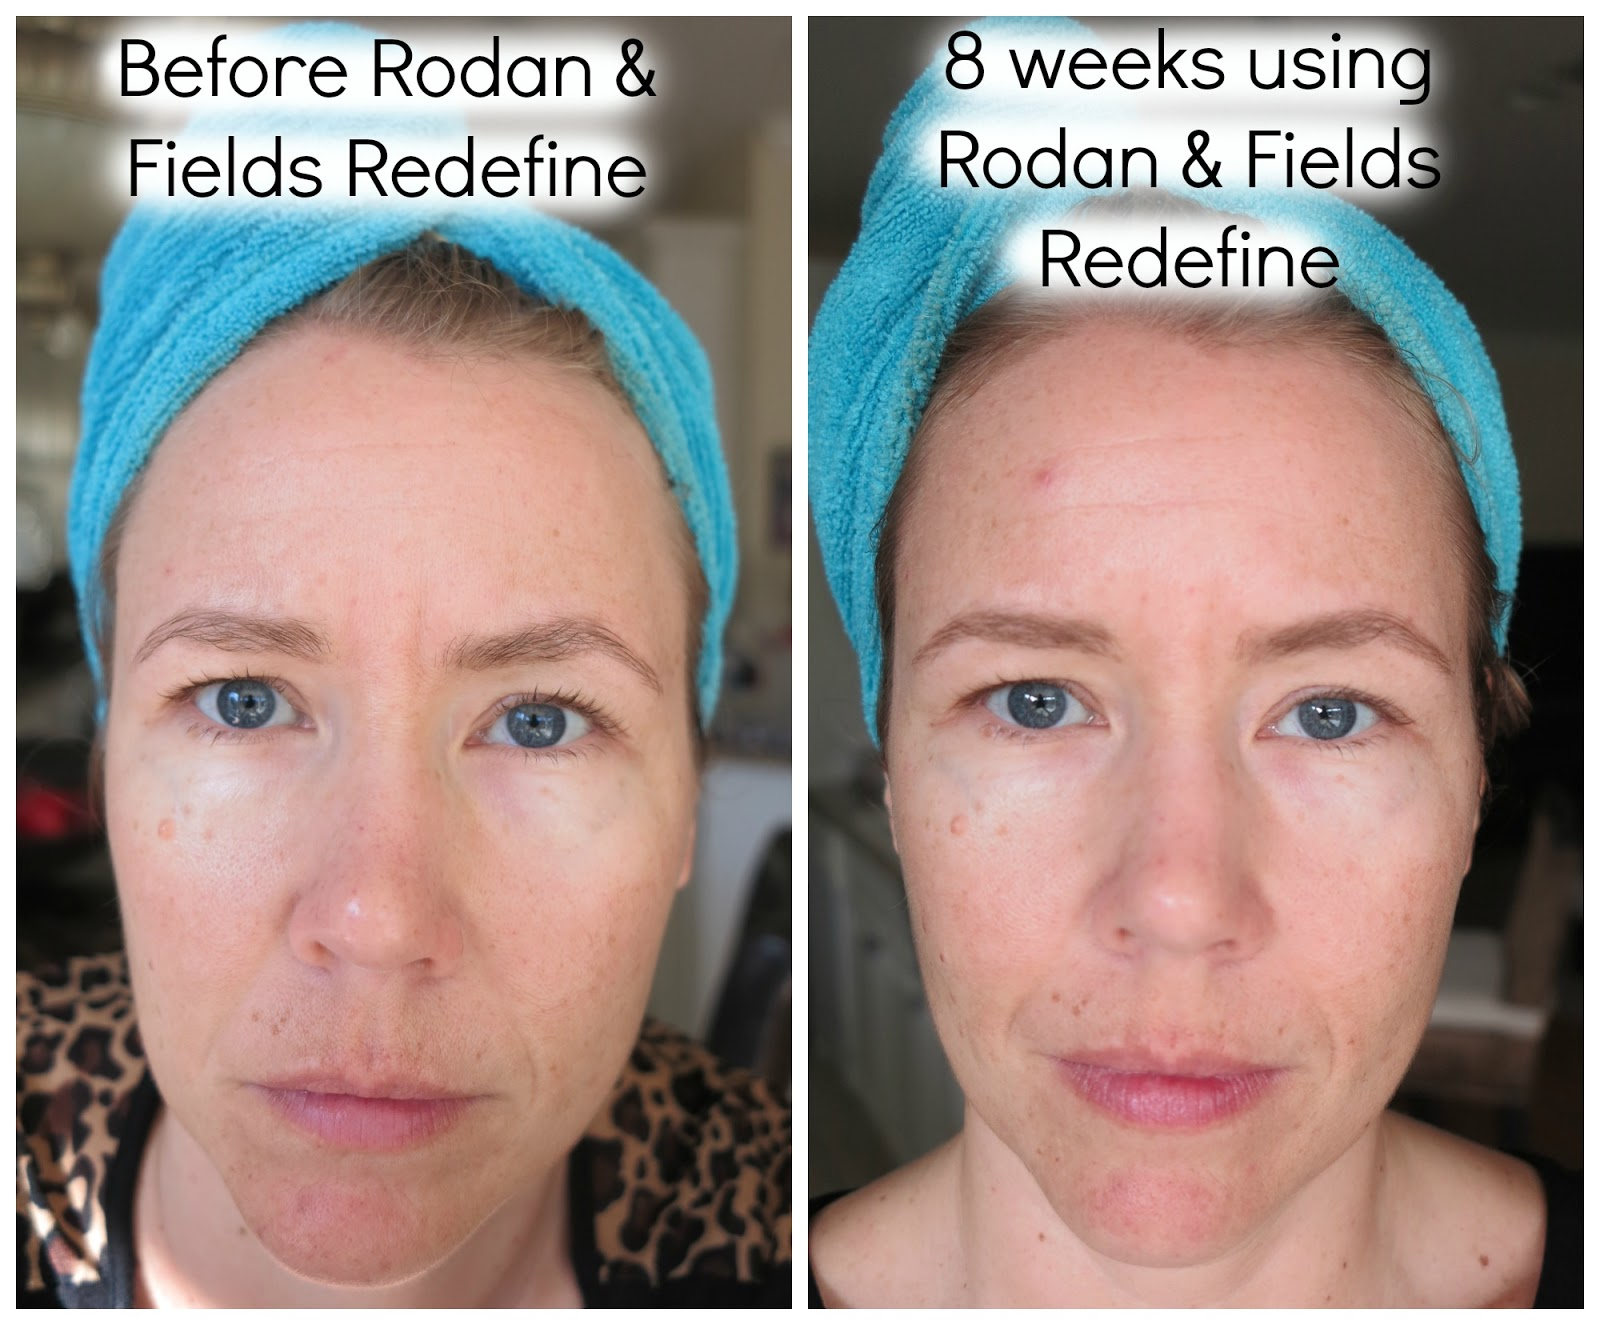 rodan fields redefine regimen review   appearance  lines pores  loss  firmness